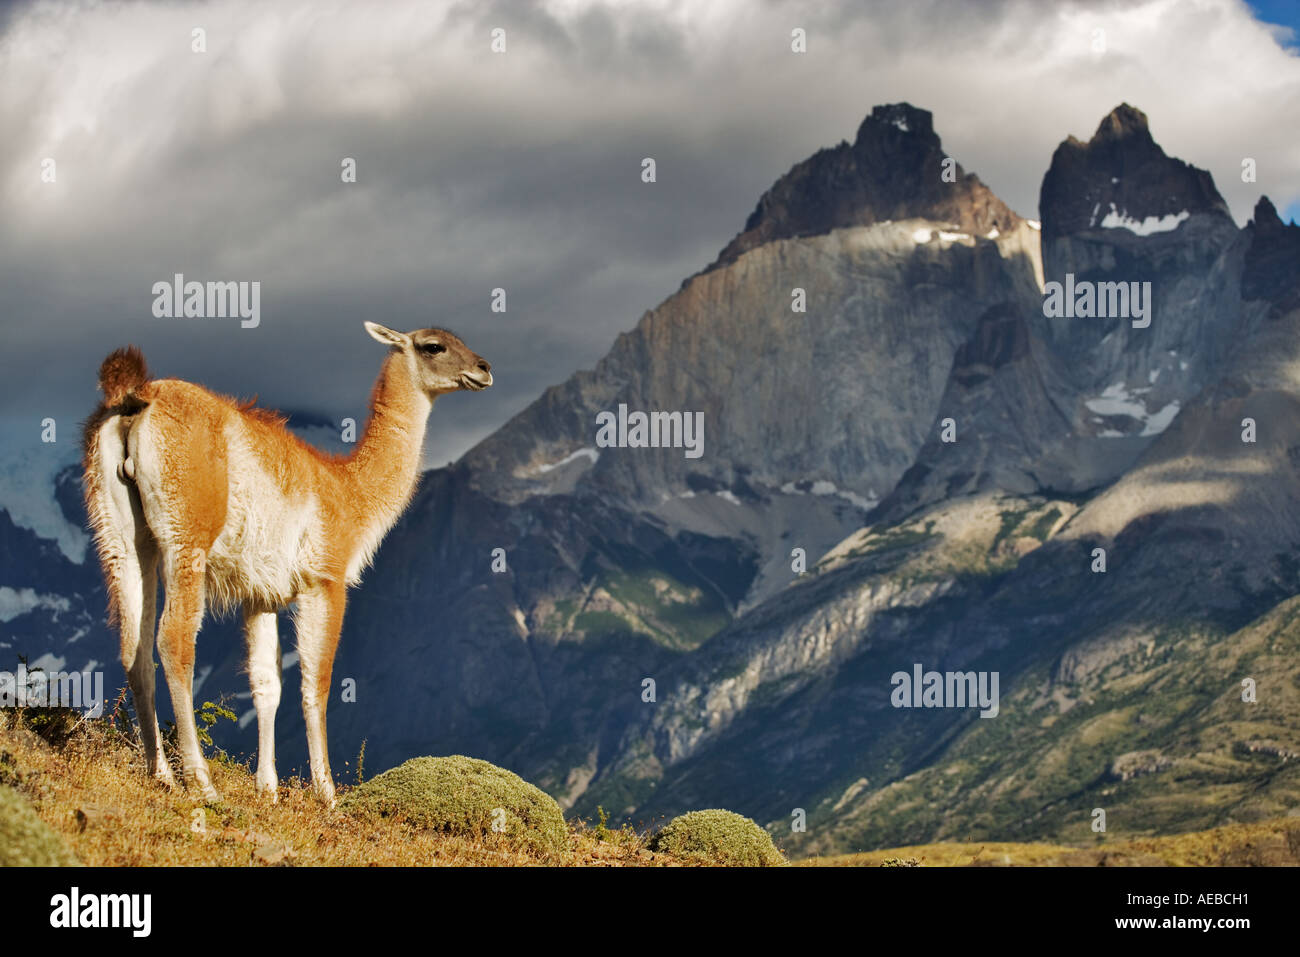 Guanaco (Lama guanicoe) Torres del Paine National Park Chile Dist South America Stock Photo